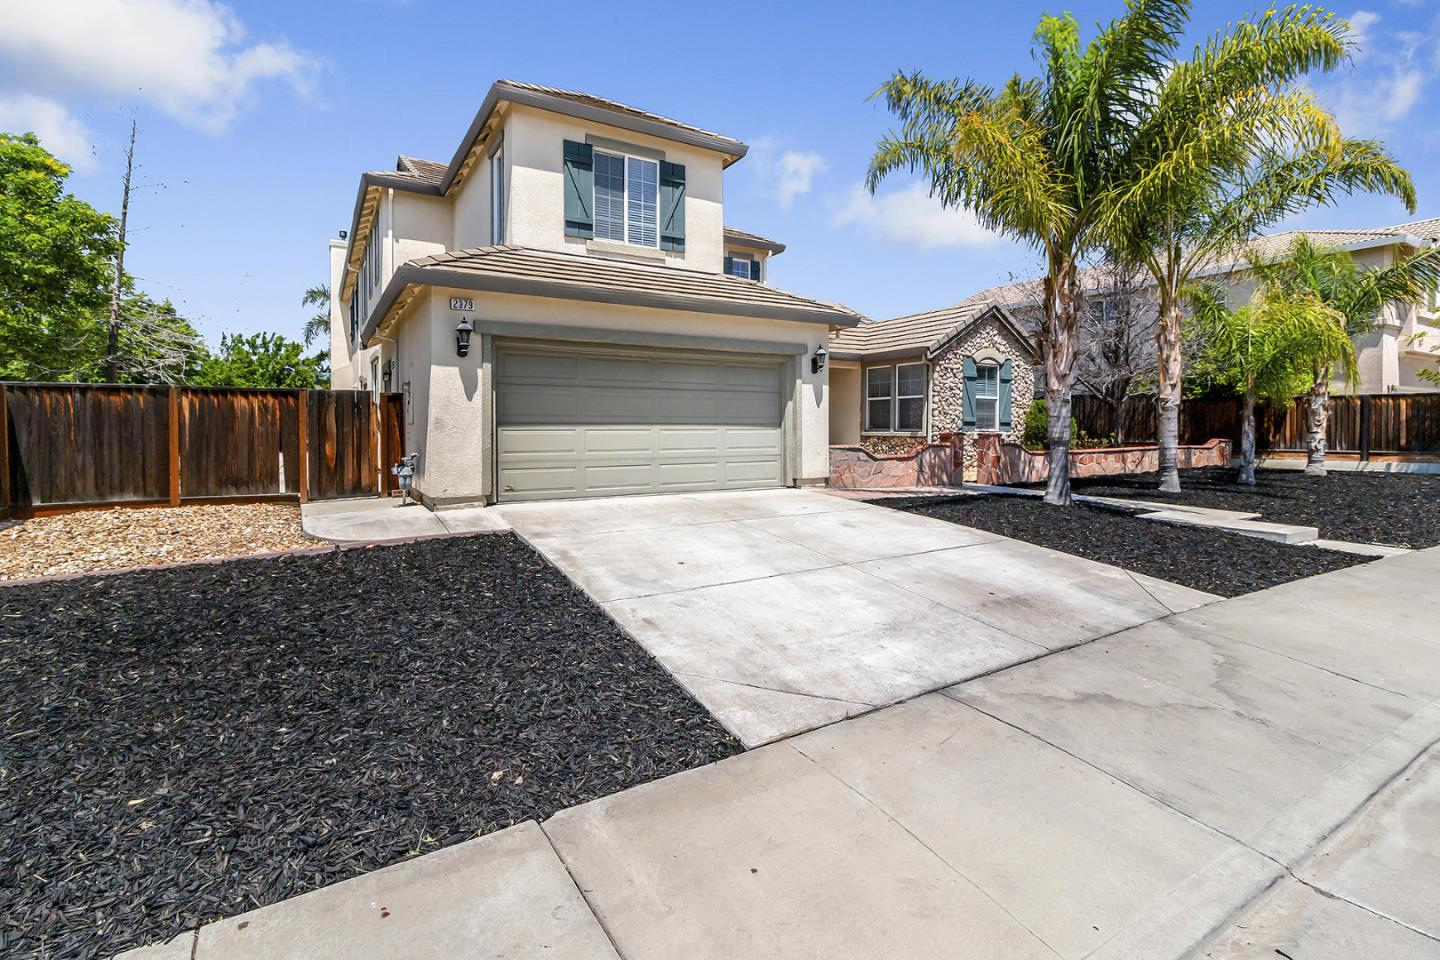 Detail Gallery Image 1 of 31 For 2379 Ogden Sannazor Ct, Tracy, CA, 95377 - 5 Beds | 4 Baths